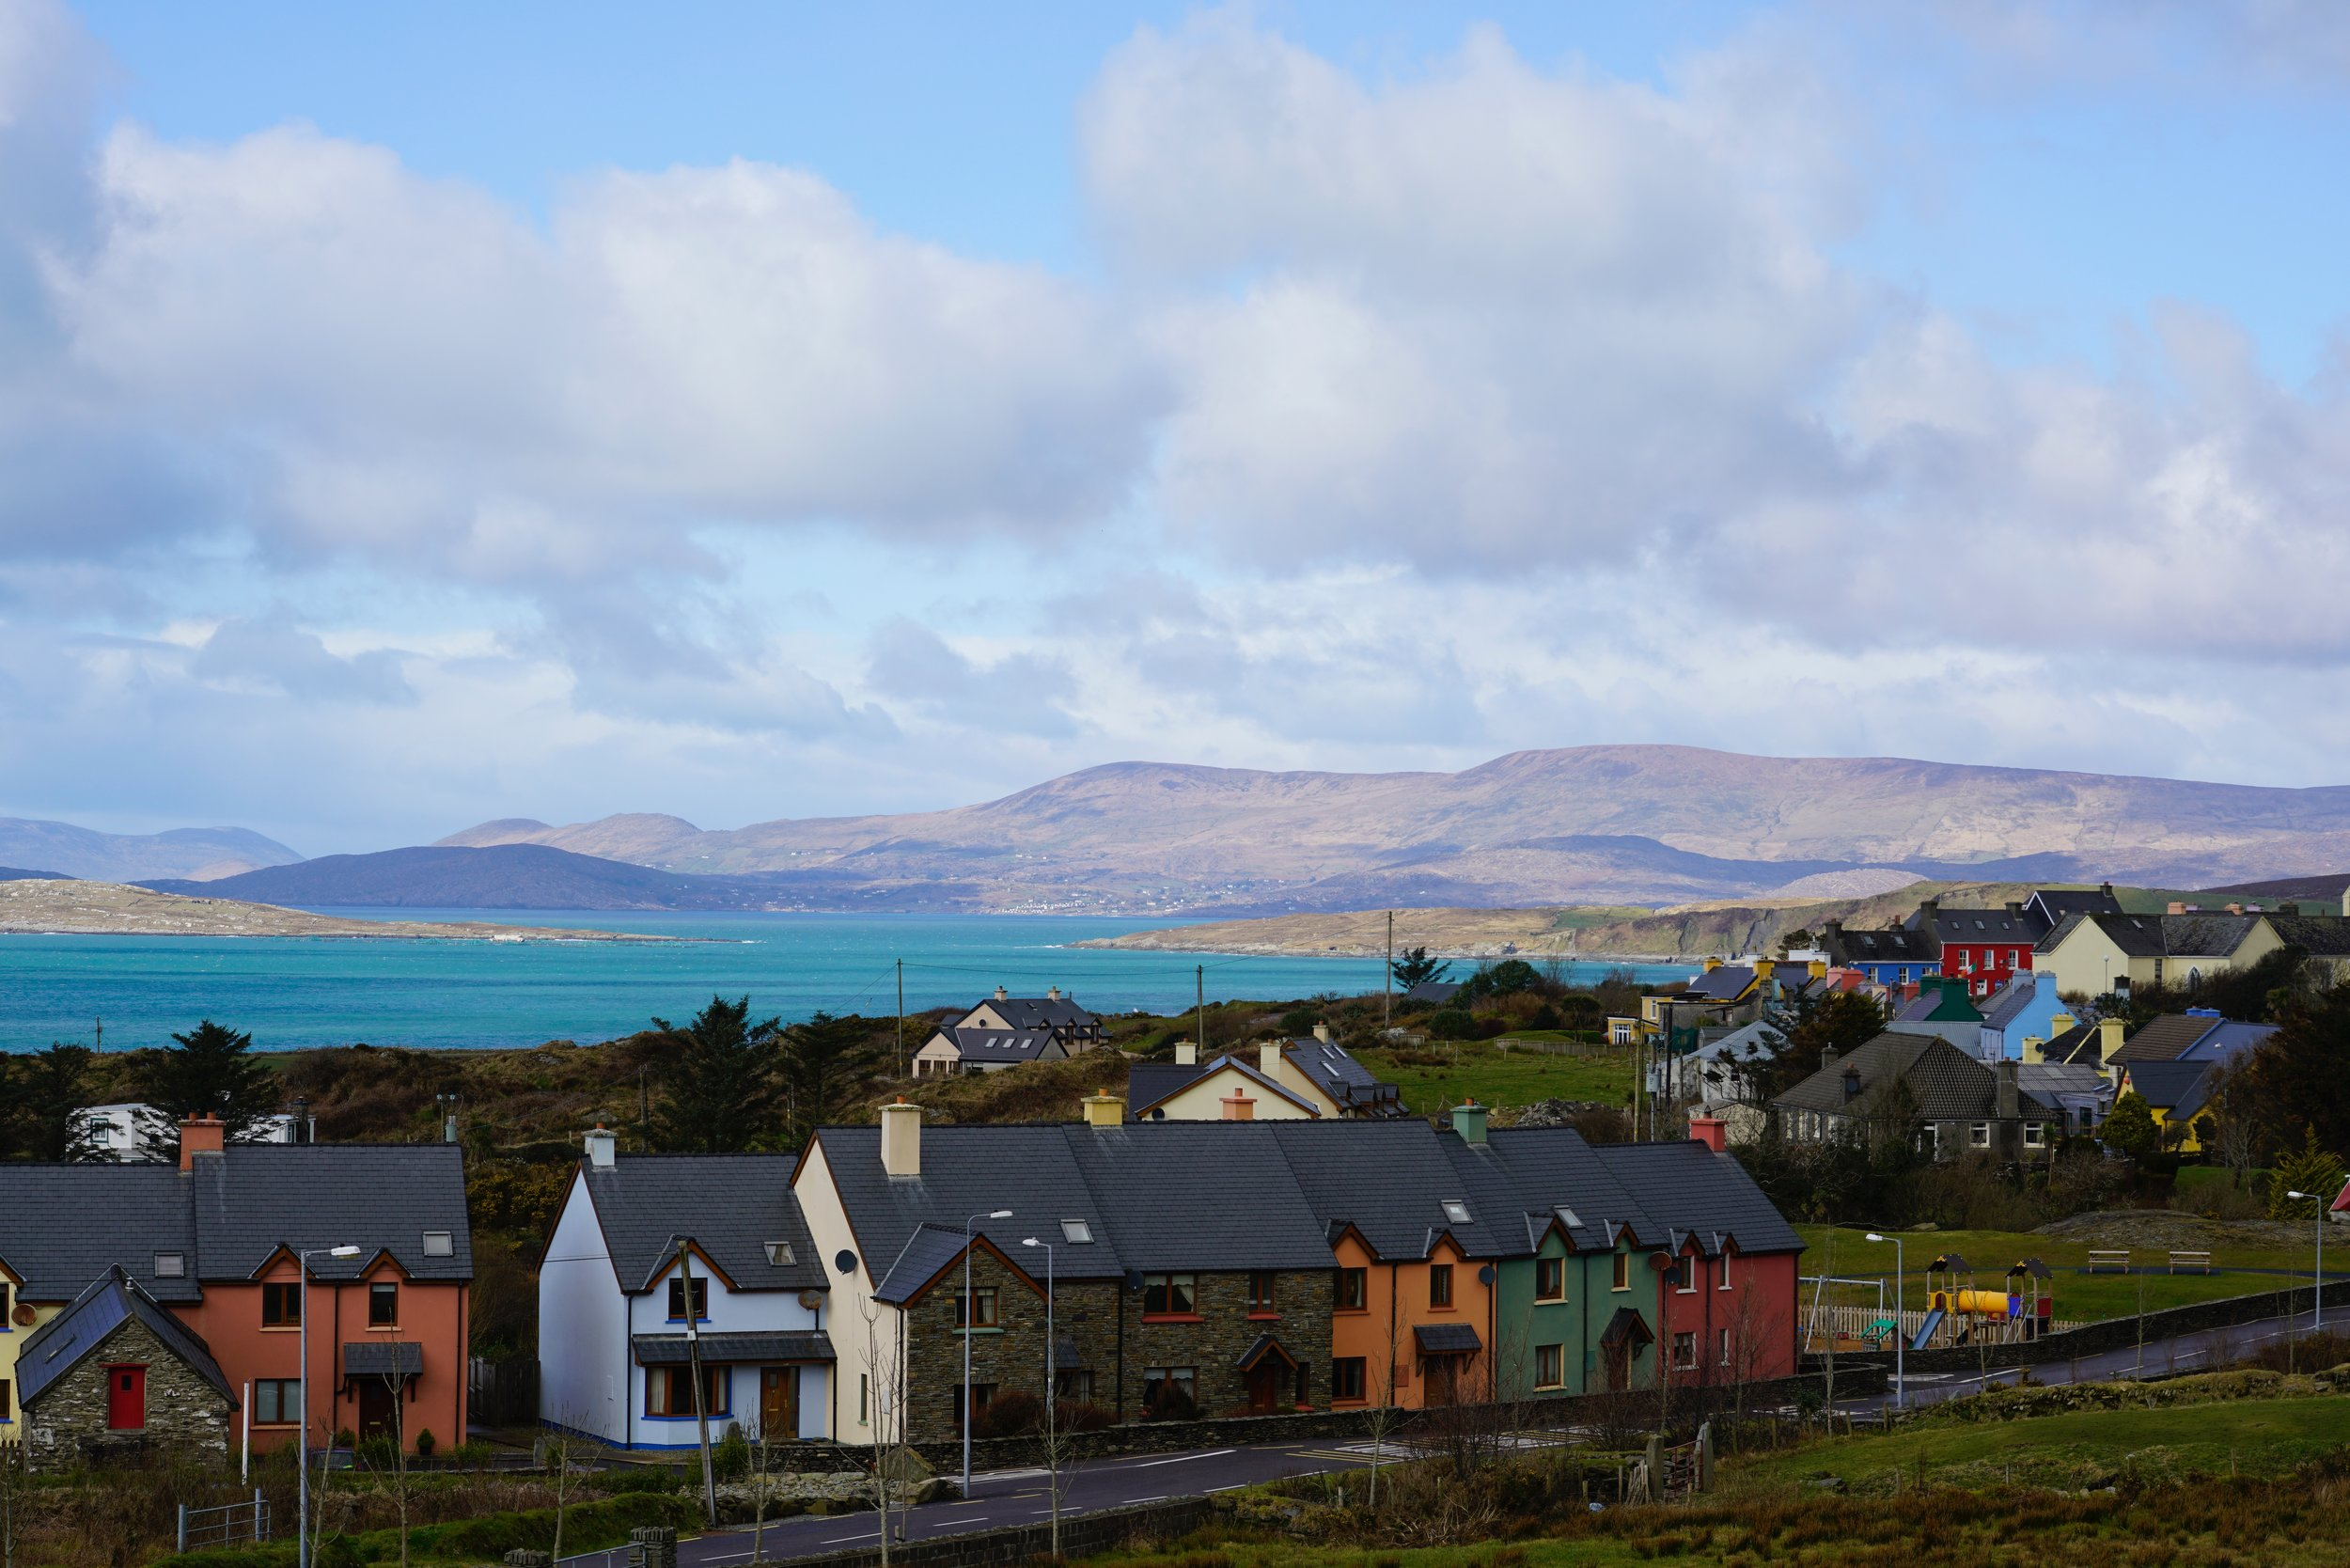 """January 5, 2019 - This is a favorite spot """"across the pond"""": The """"Tidy Town"""" of Eyries on the Beara Peninsula in the Republic of Ireland."""